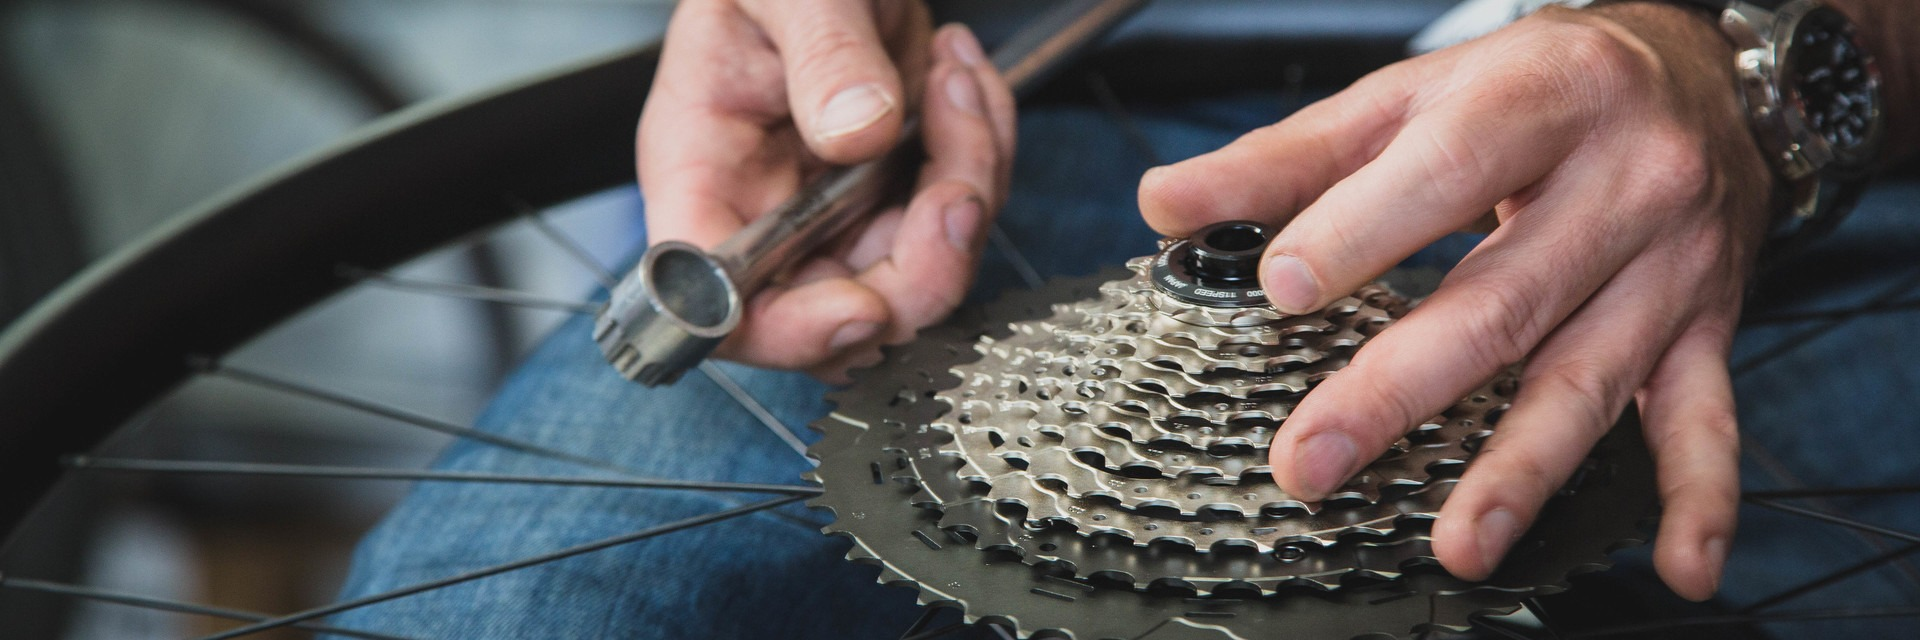 Bike Repair | Colorado Springs, CO - Ted's Bicycles | Colorado